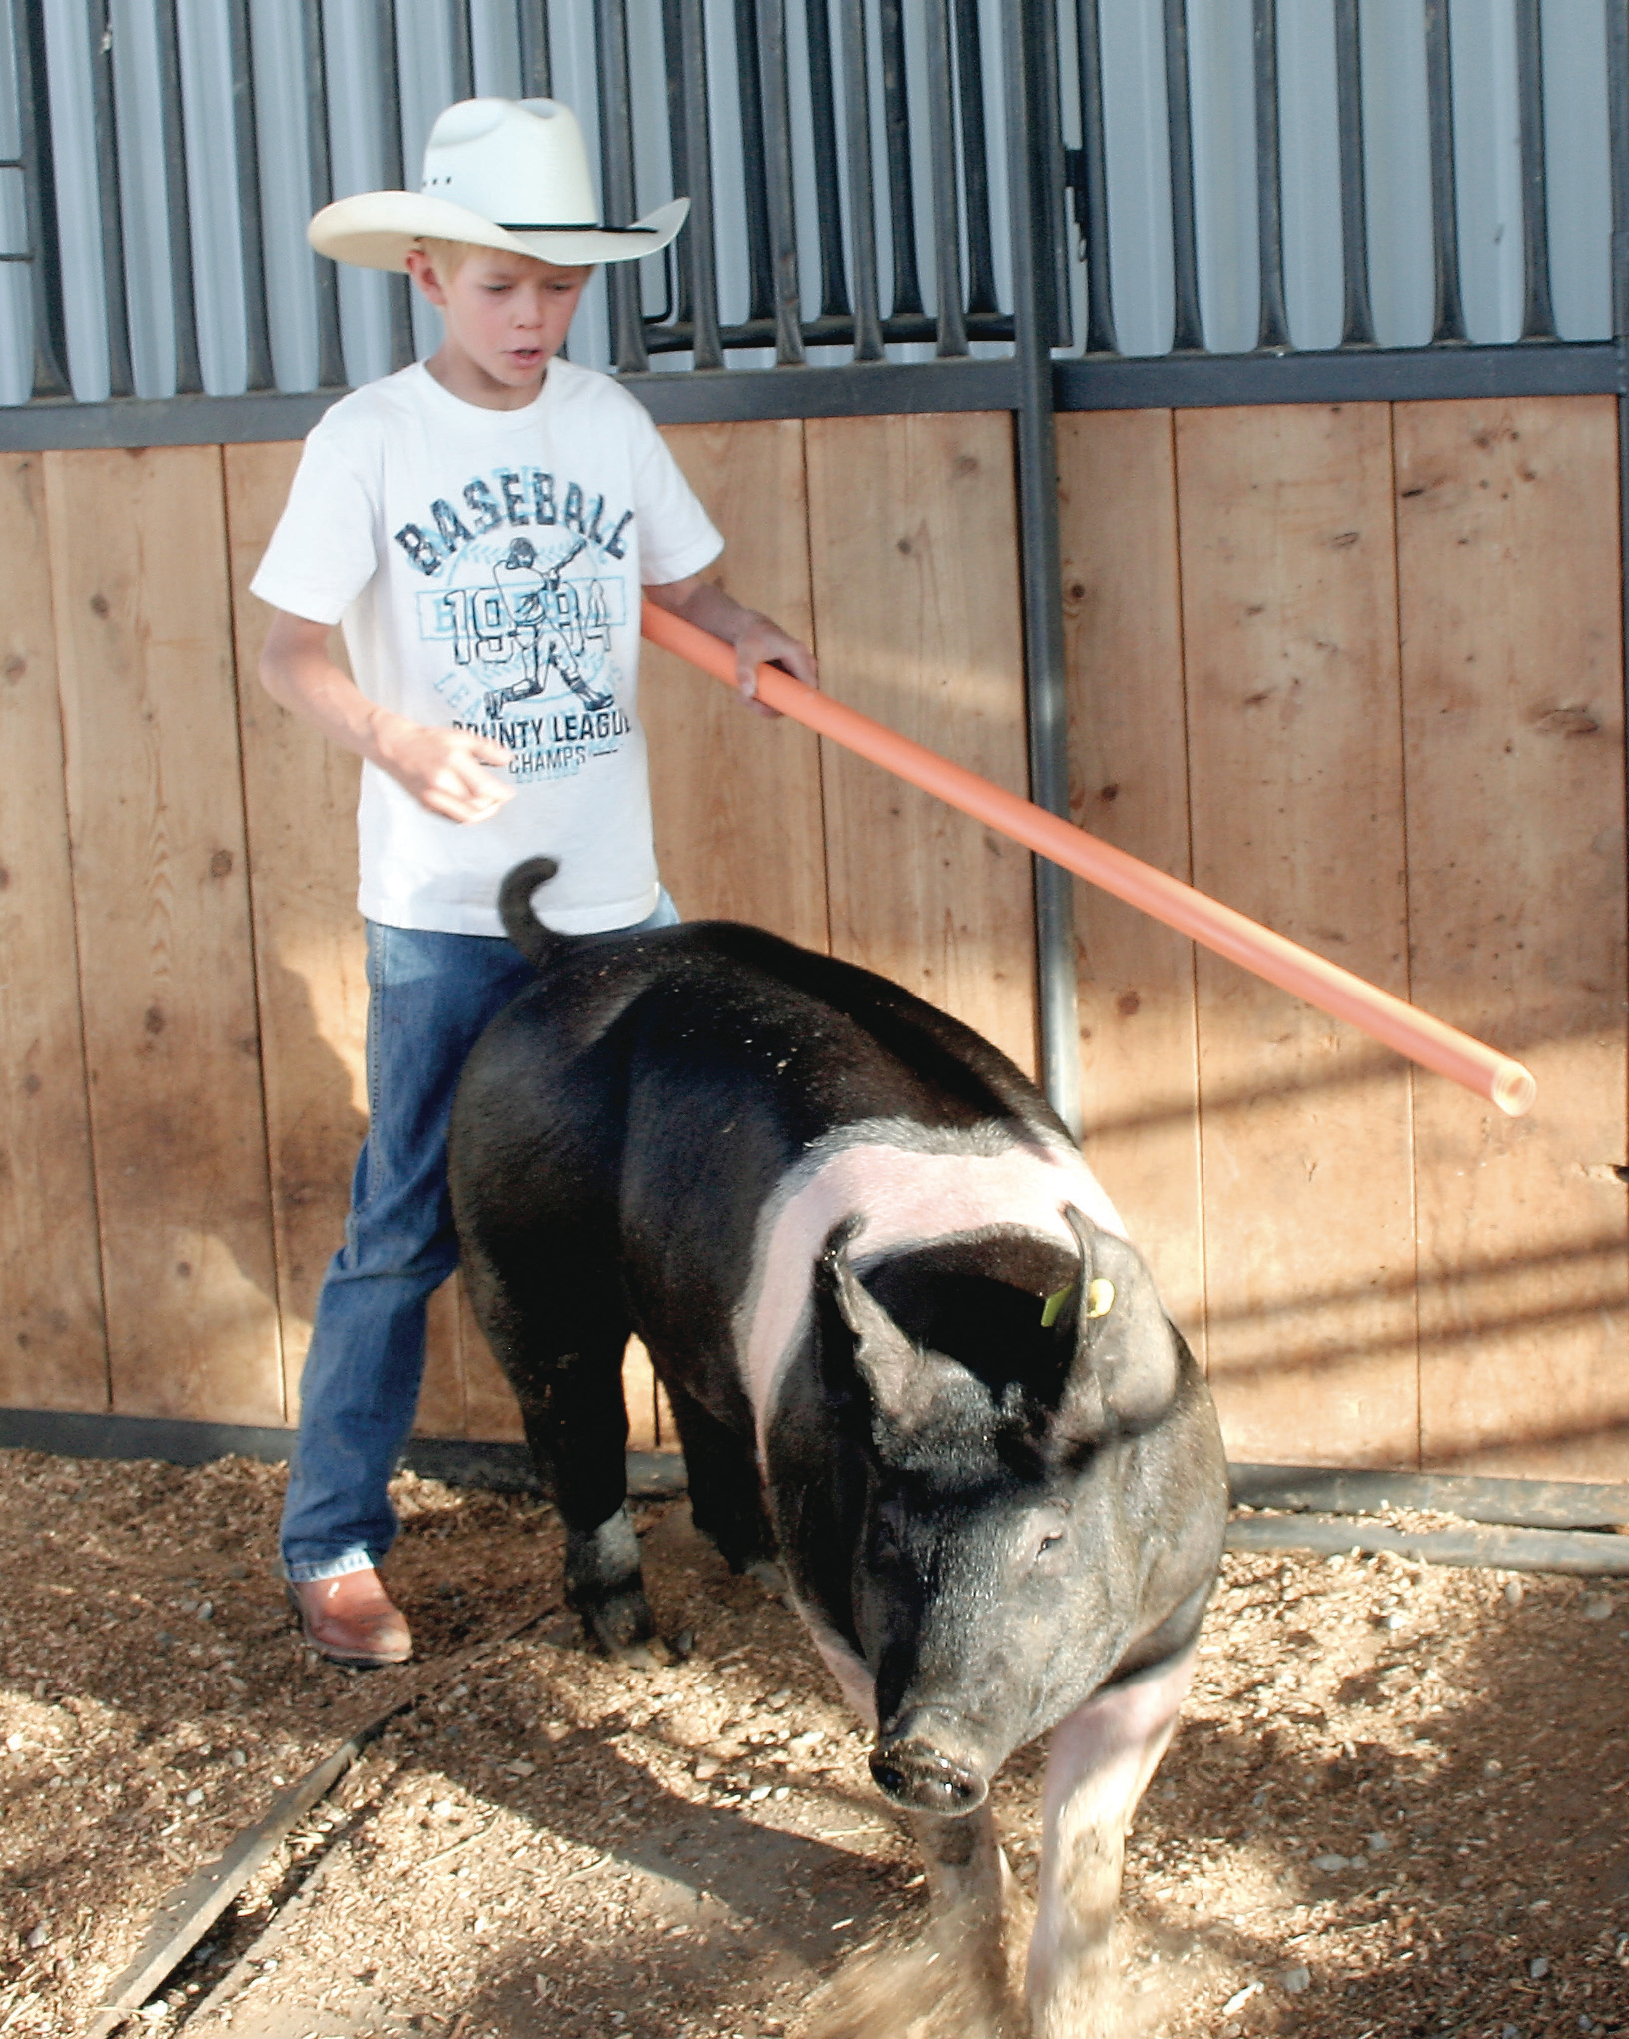 Brody Woods uses a pole to guide his pig, Happy, around his pen. He'll be using the same technique to show the pig before judges this week.